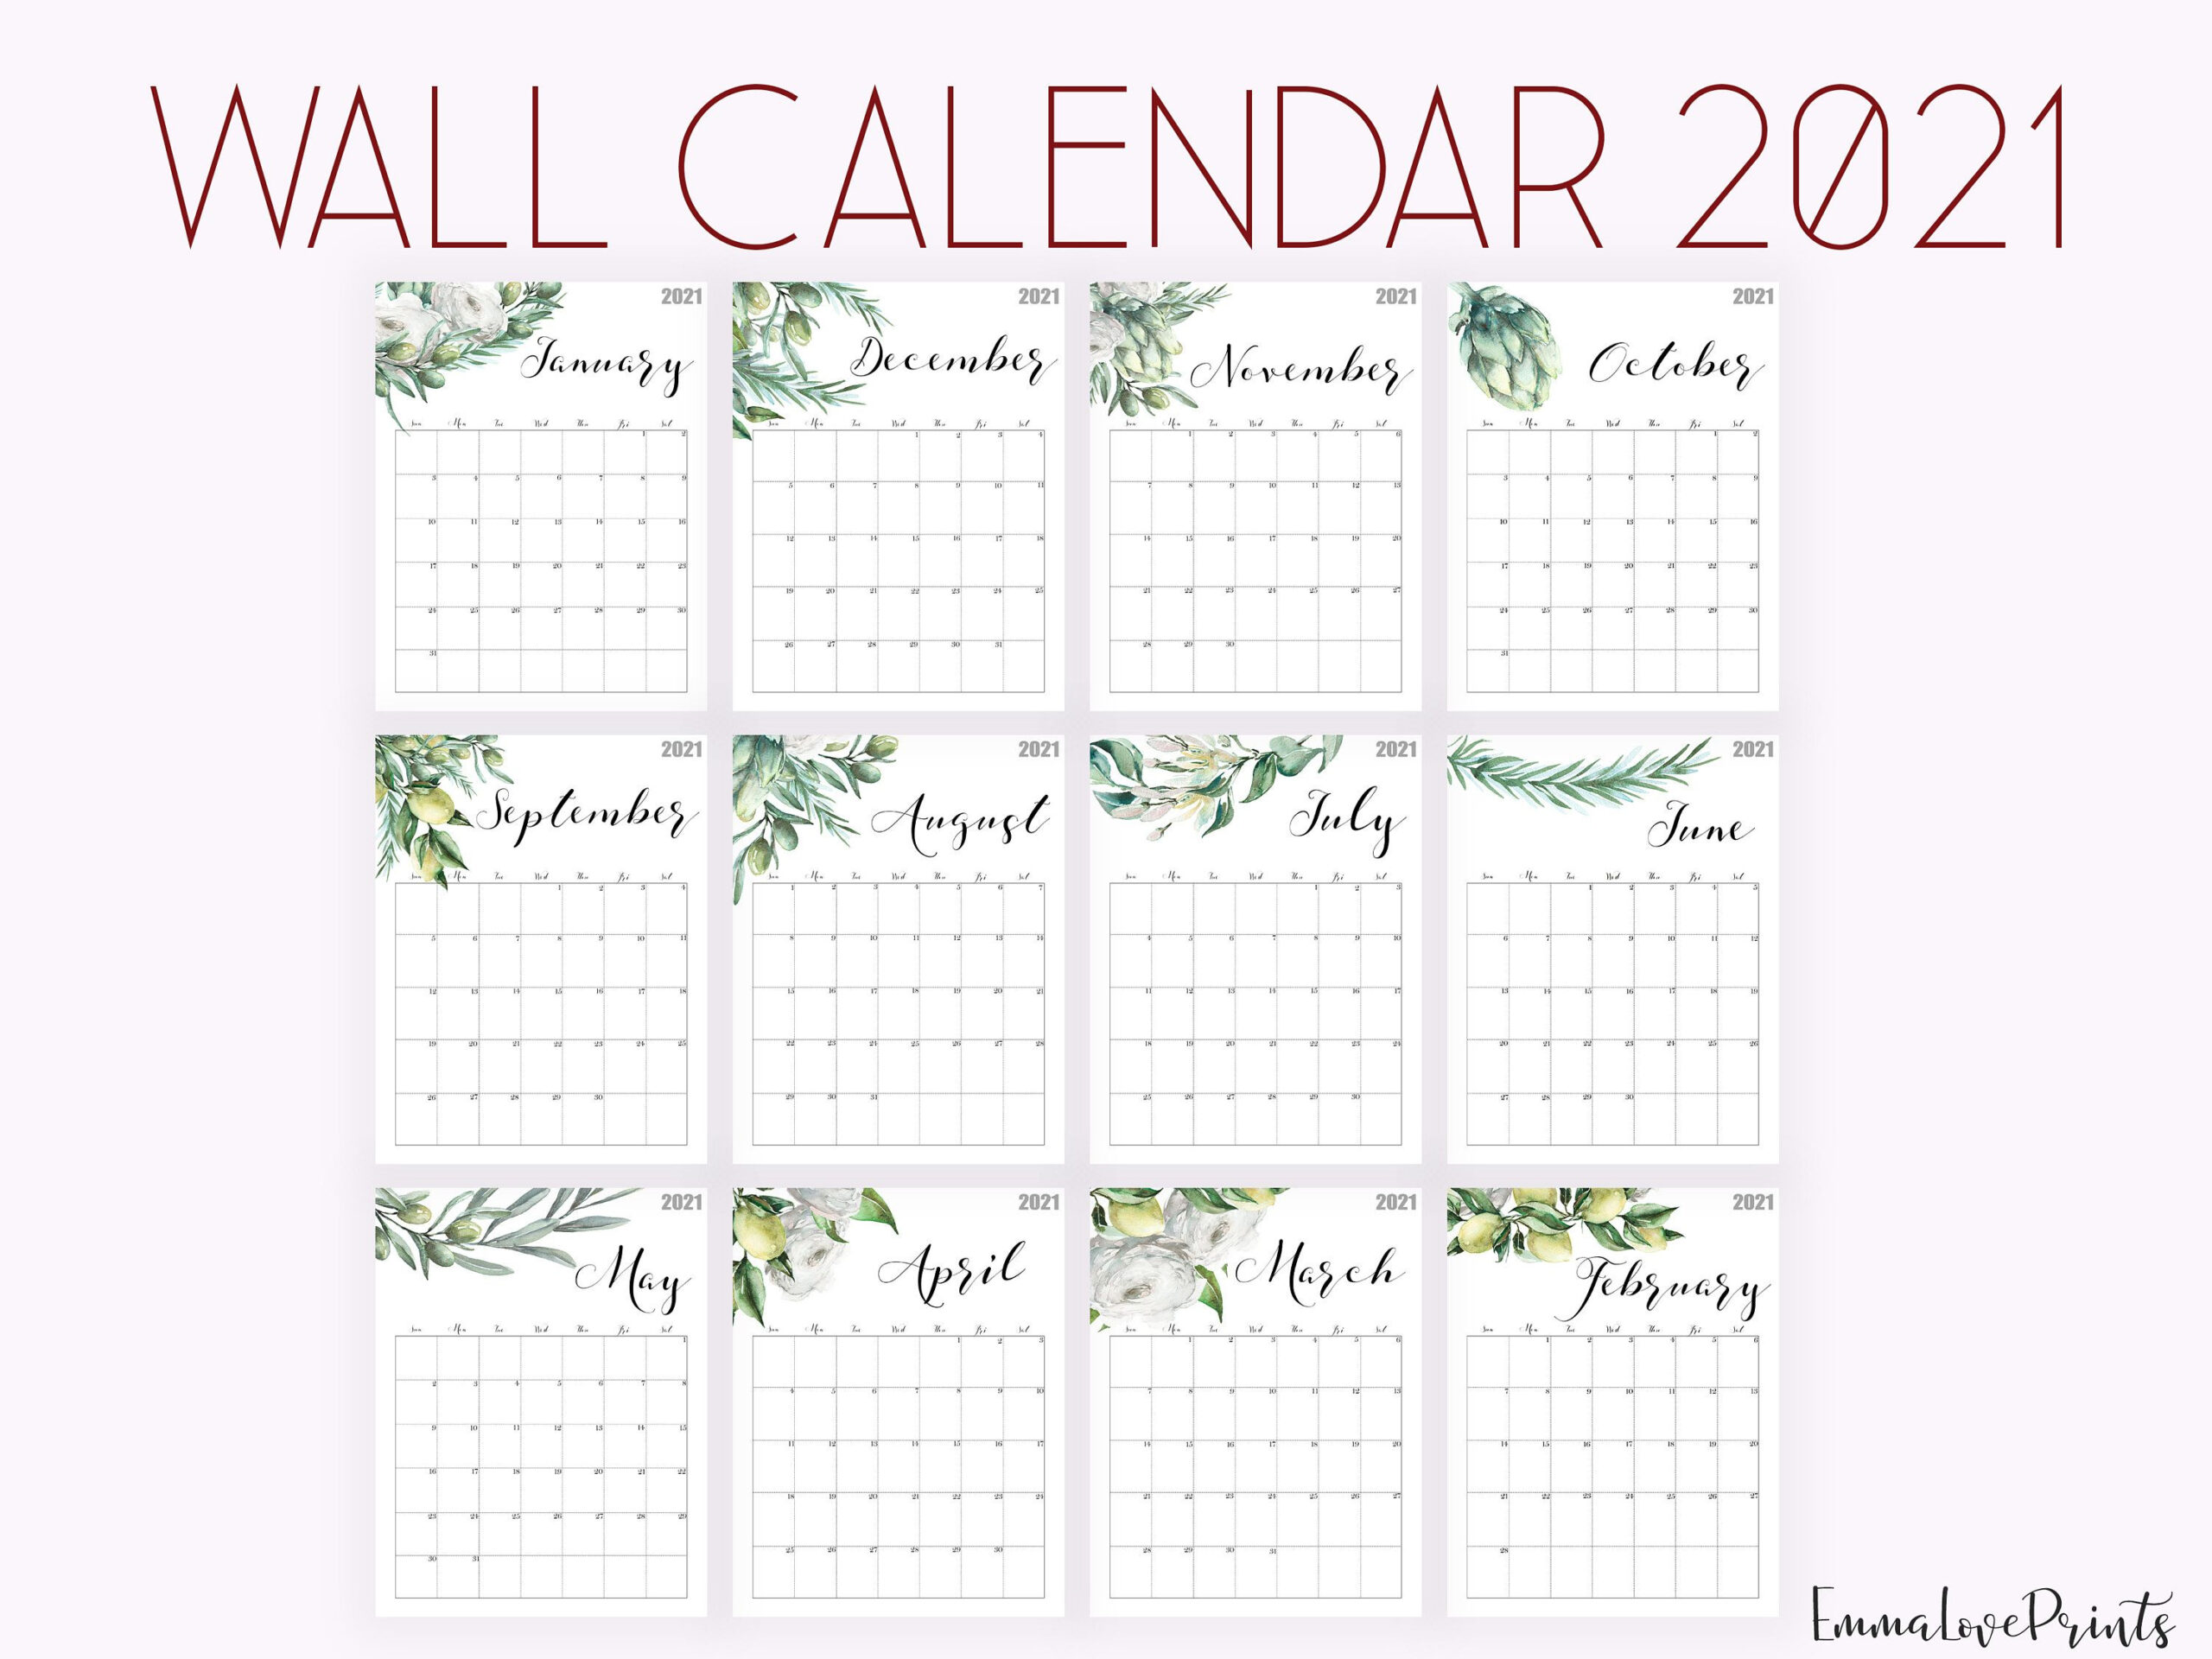 2021 Calendar Watercolour Calendar 2021 Botanical Wall